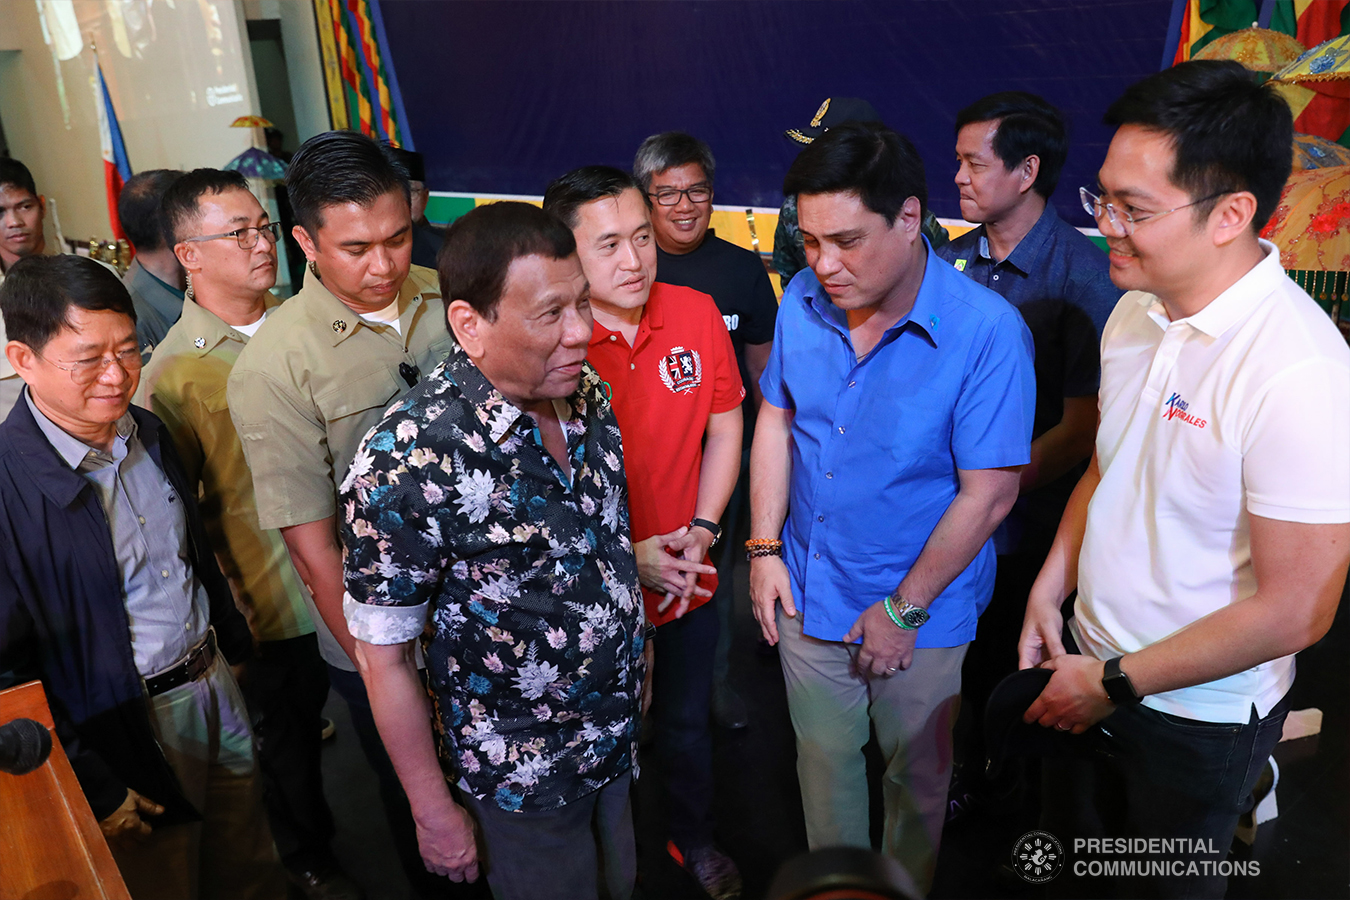 """President Rodrigo Roa Duterte shares a light moment with Interior and Local Government Secretary Eduardo Año, Former Special Assistant to the President Christopher Lawrence """"Bong"""" Go, Autonomous Region in Muslim Mindanao (ARMM) Governor Mujiv Hataman, Senator Juan Miguel Zubiri, Social Welfare and Development Secretary Rolando Bautista, and Cabinet Secretary Karlo Nograles at the sidelines of the Peace Assembly for the Ratification of Republic Act No. 11054 or the Bangsamoro Organic Law (BOL), held at the Shariff Kabunsuan Cultural Complex in Cotabato City on January 18, 2019. ROBINSON NIÑAL JR./PRESIDENTIAL PHOTO"""